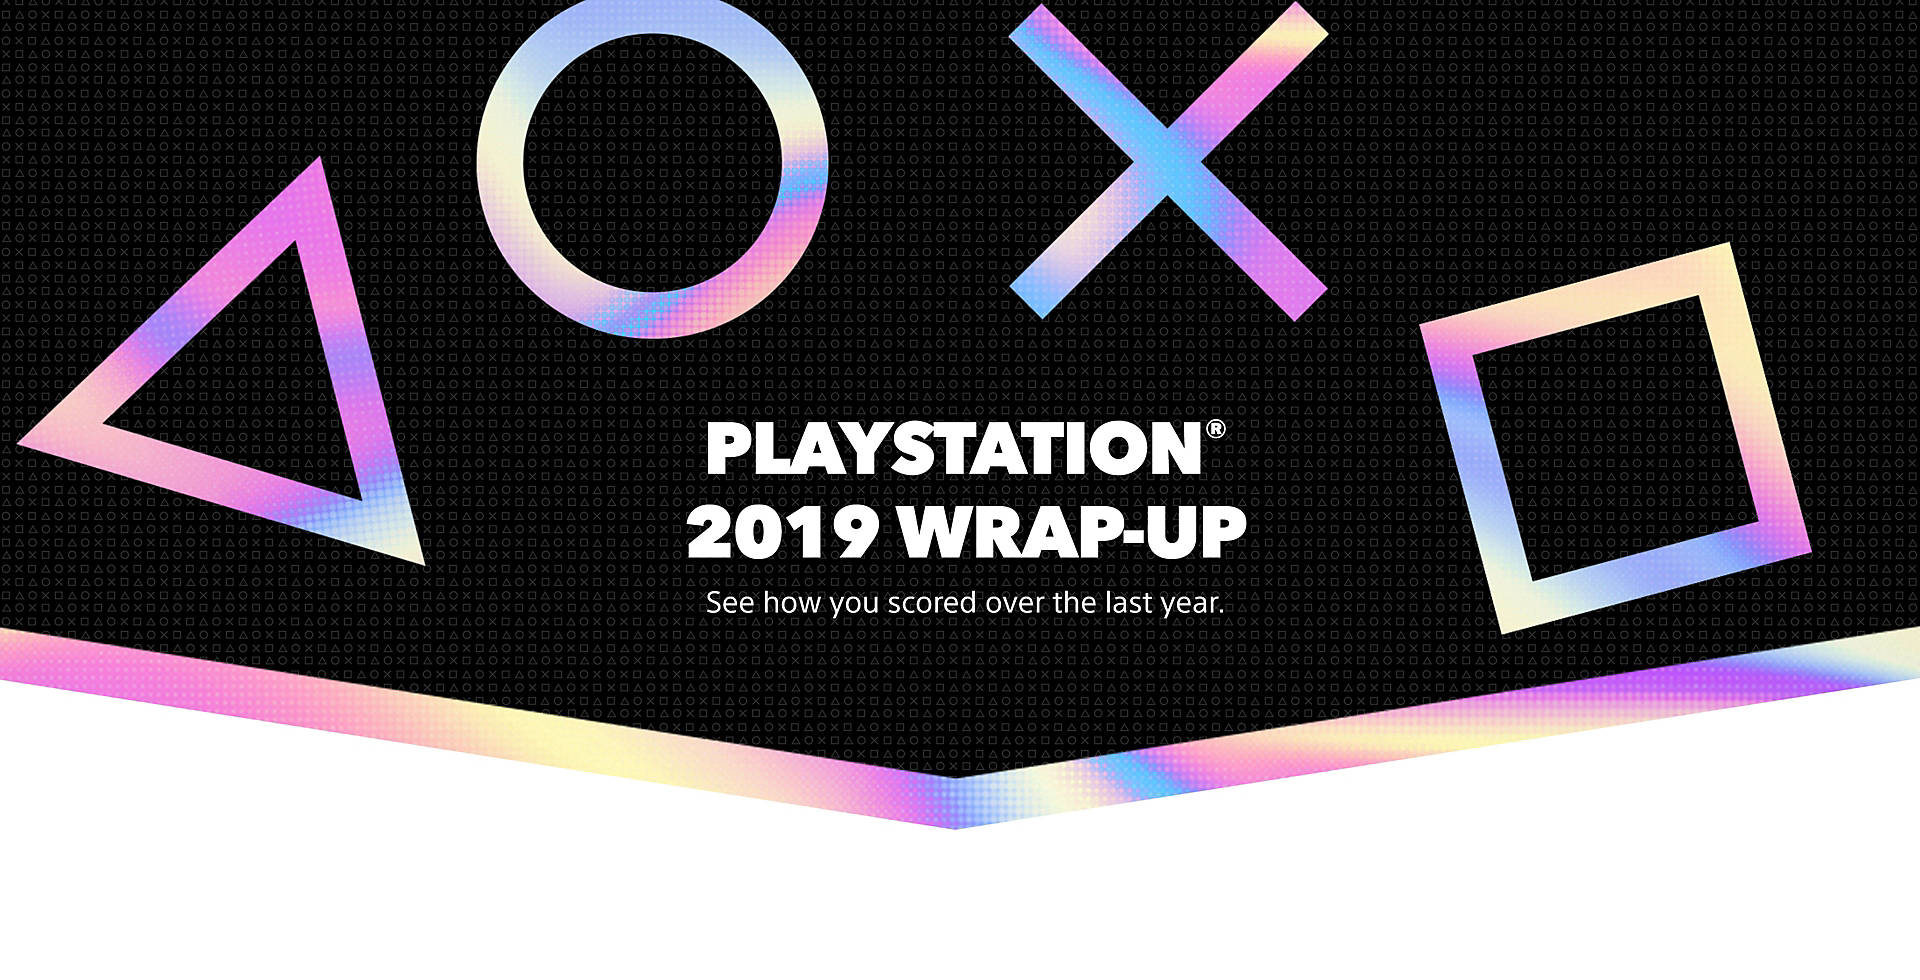 PlayStation 2019 özeti